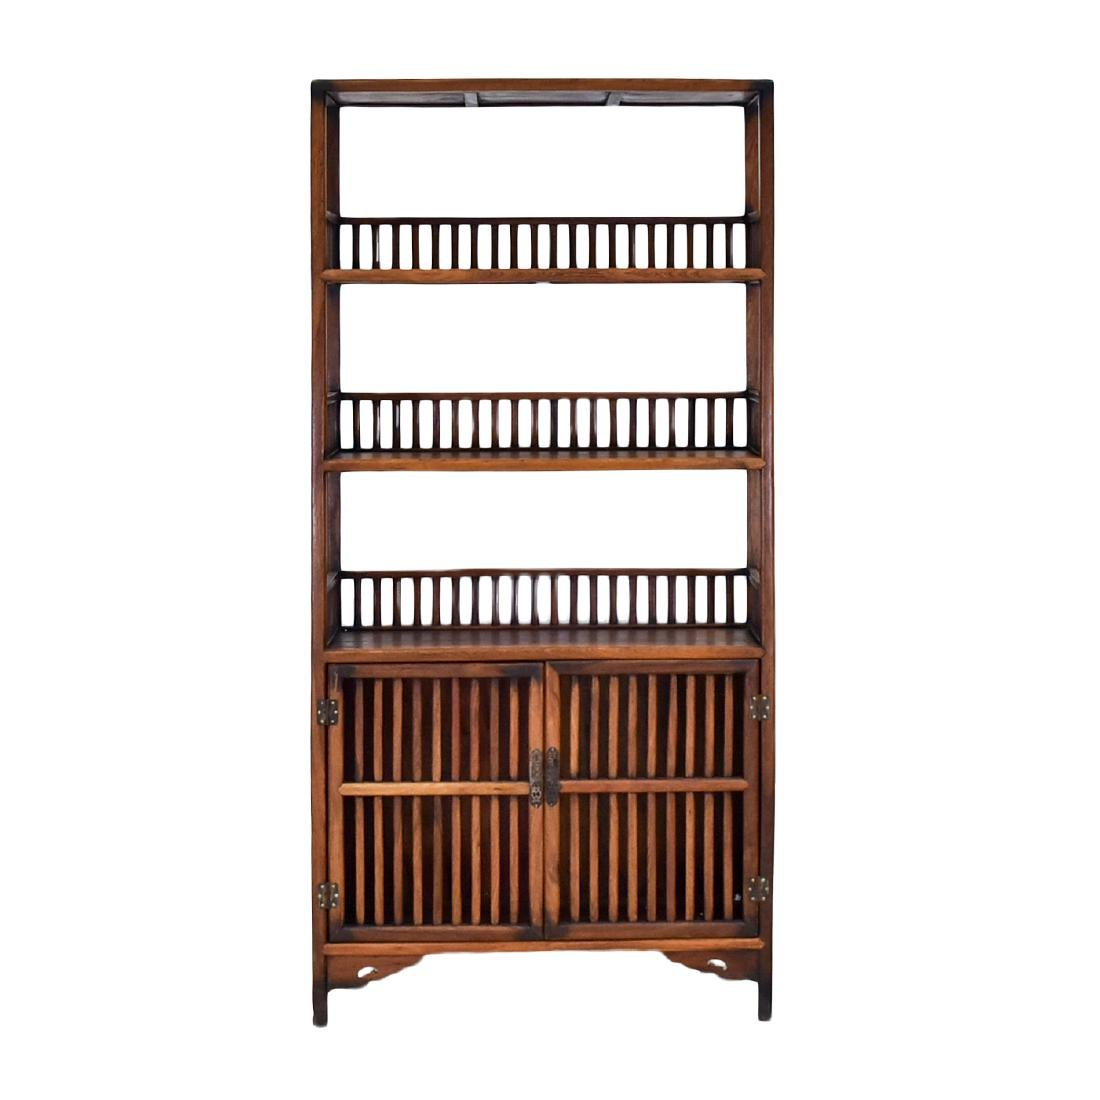 19TH C CHINESE HUANGHUALI BOOK CASE